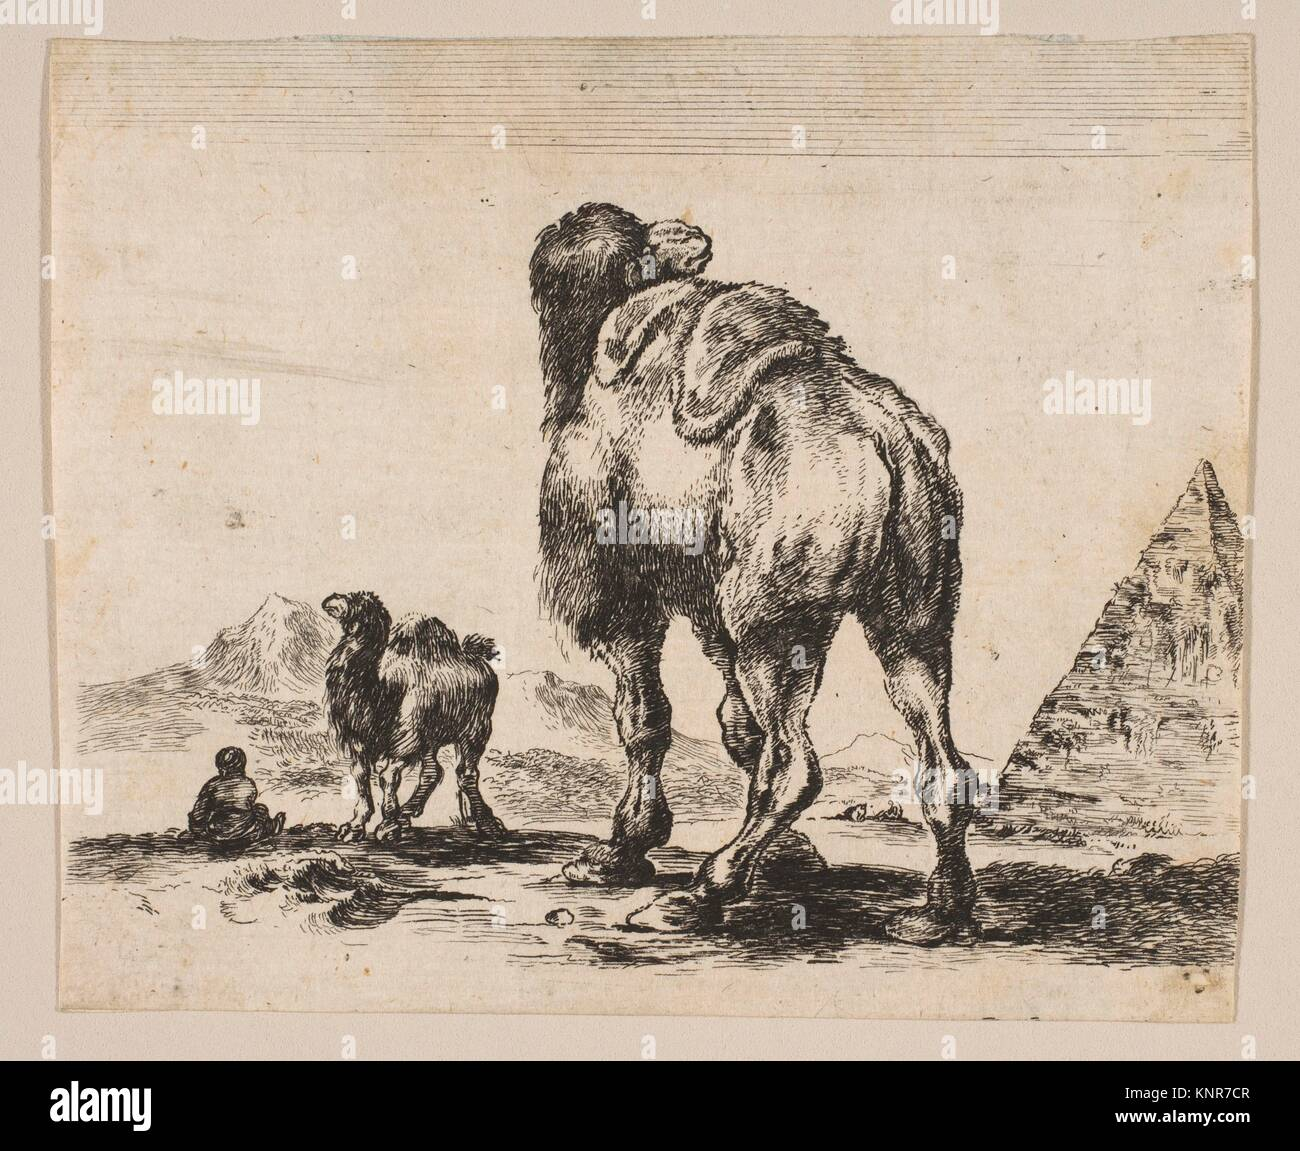 Plate 18: camel viewed from behind with pyramid at right, from 'Various animals' (Diversi animali). Series/Portfolio: - Stock Image